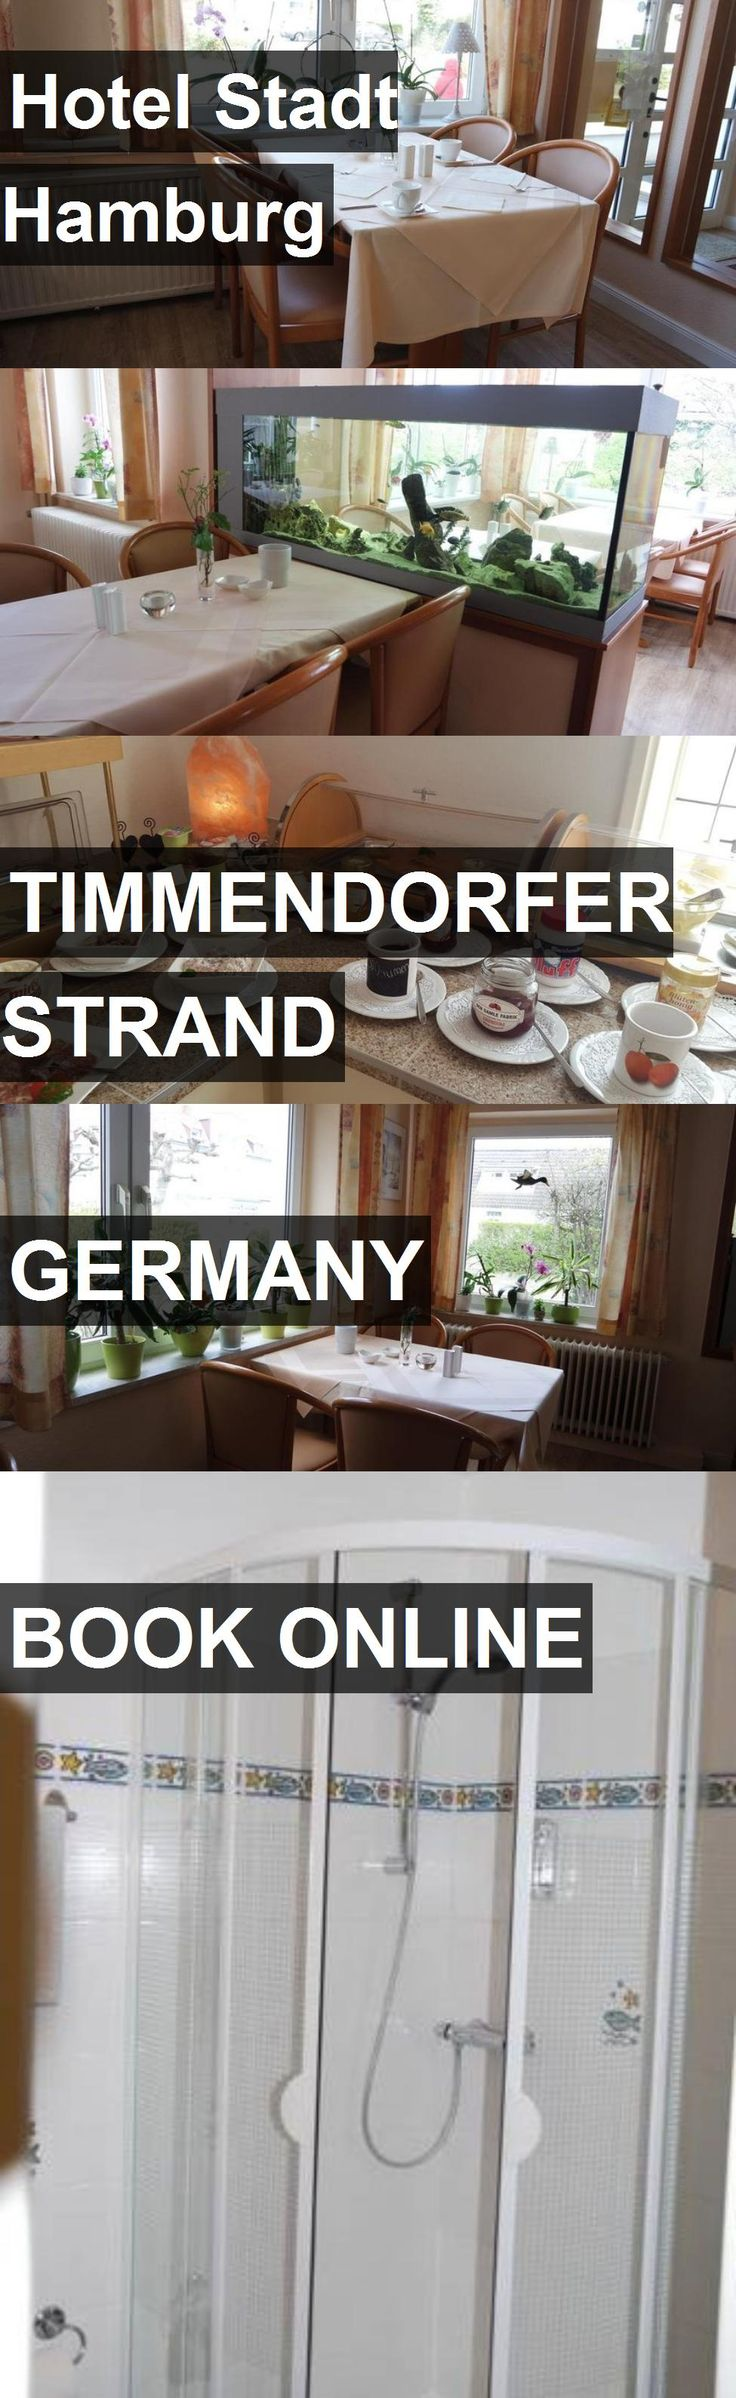 Hotel Stadt Hamburg in Timmendorfer Strand, Germany. For more information, photos, reviews and best prices please follow the link. #Germany #TimmendorferStrand #travel #vacation #hotel